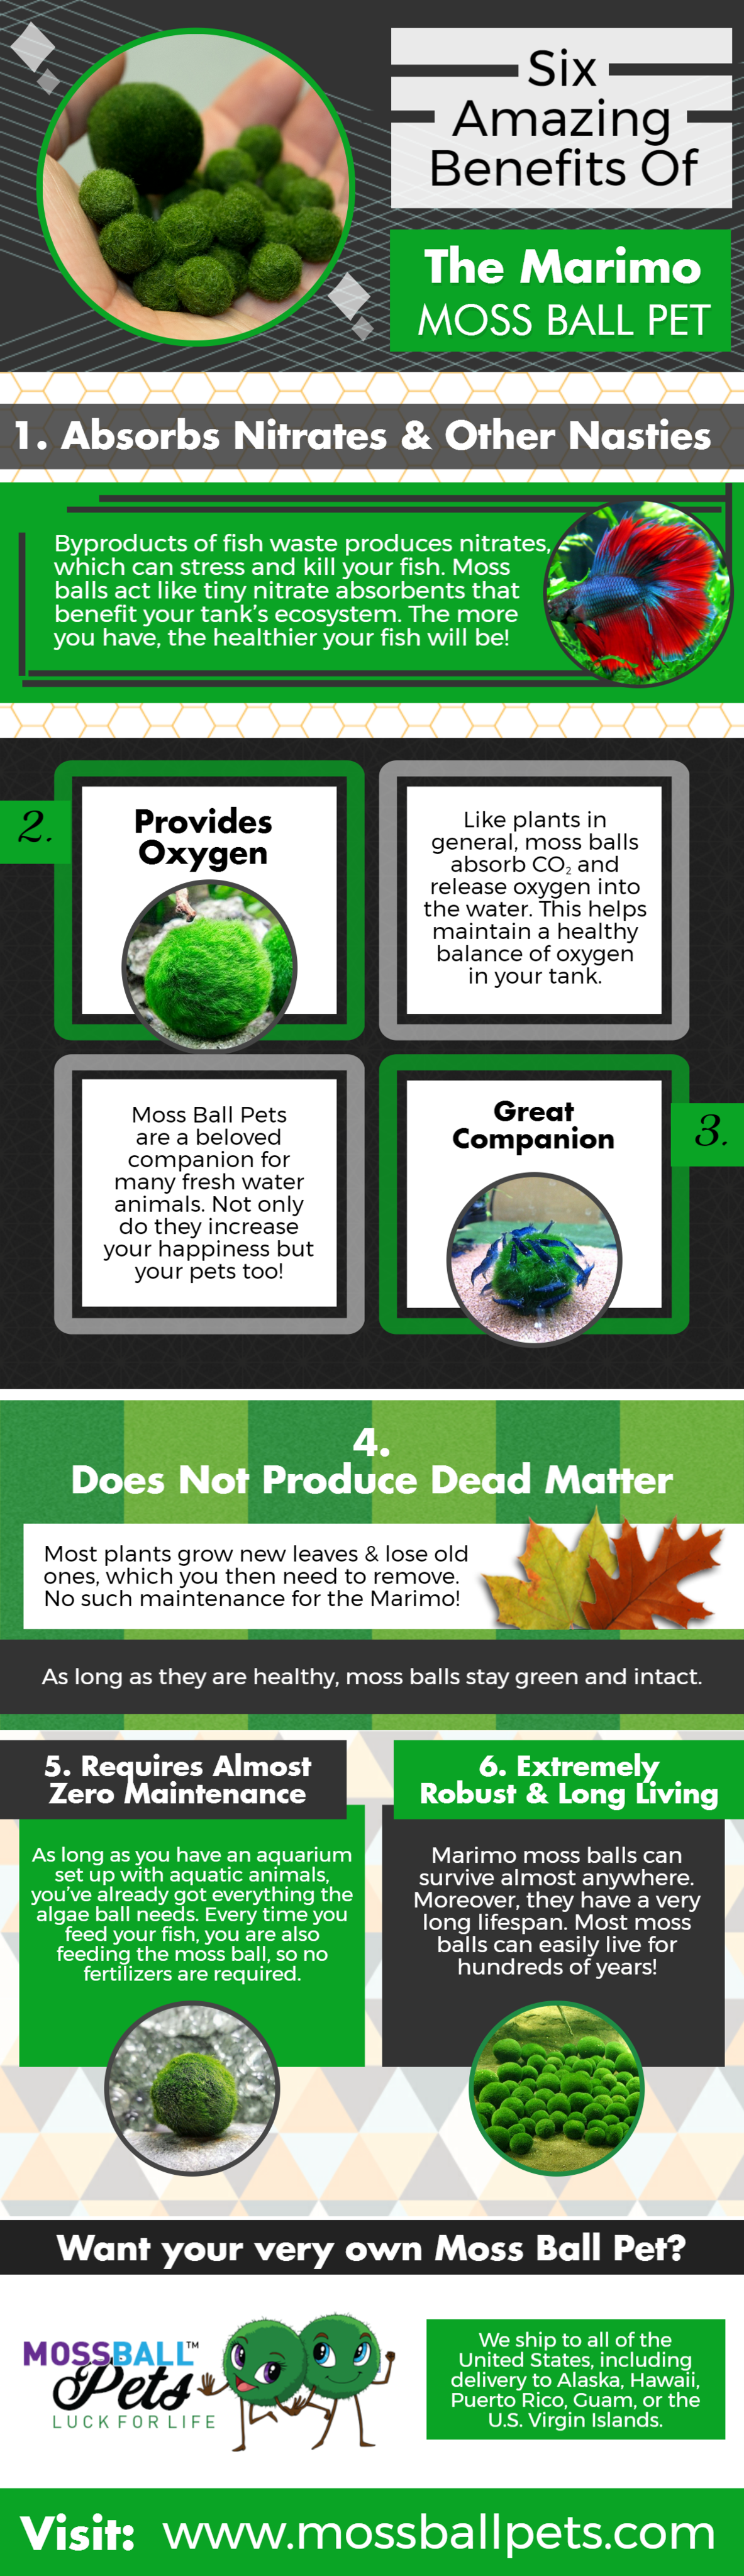 Six Amazing Benefits Of The Marimo Moss Ball Pet